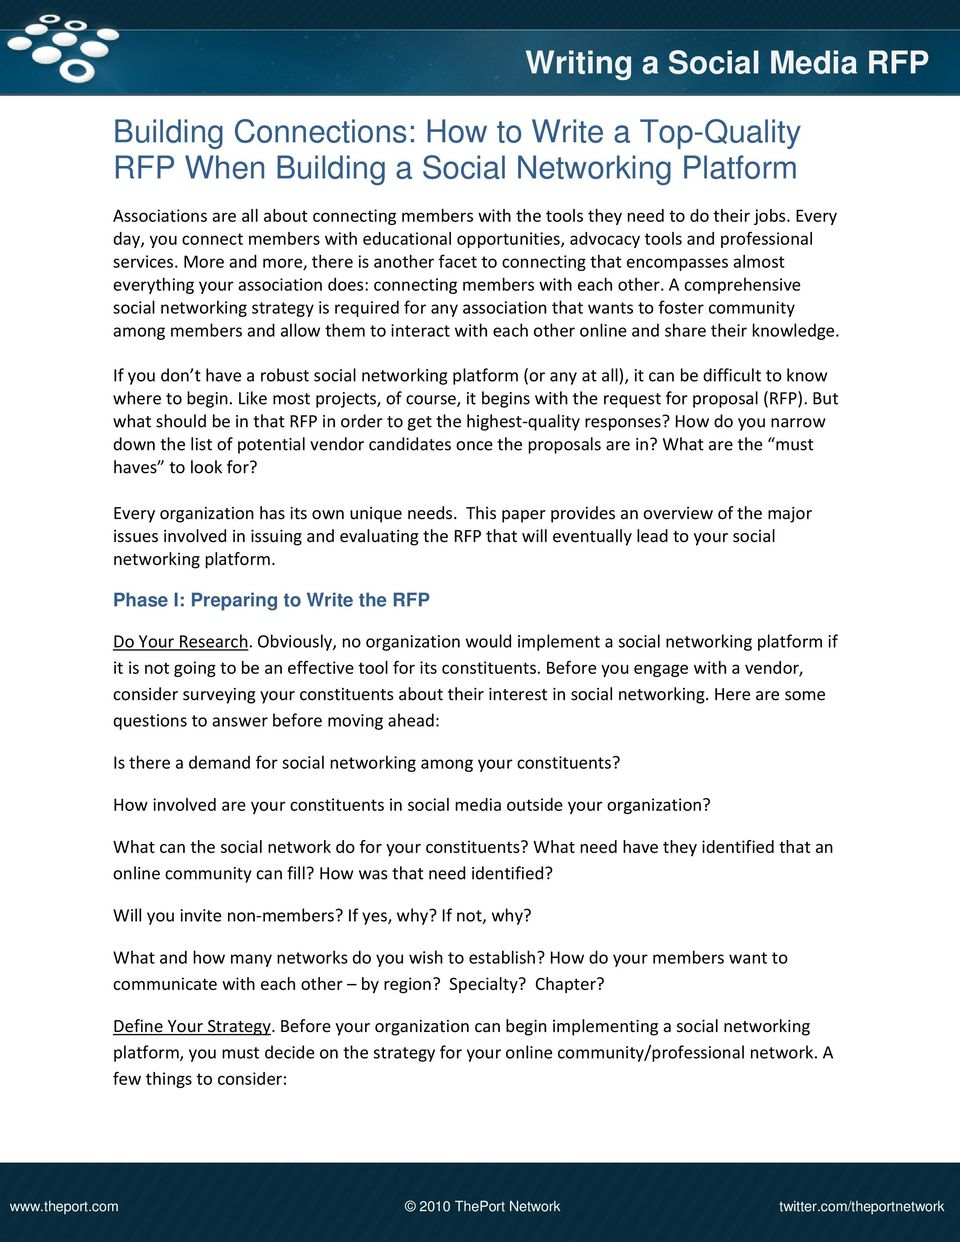 Building Connections: How to Write a Top-Quality RFP When Building a